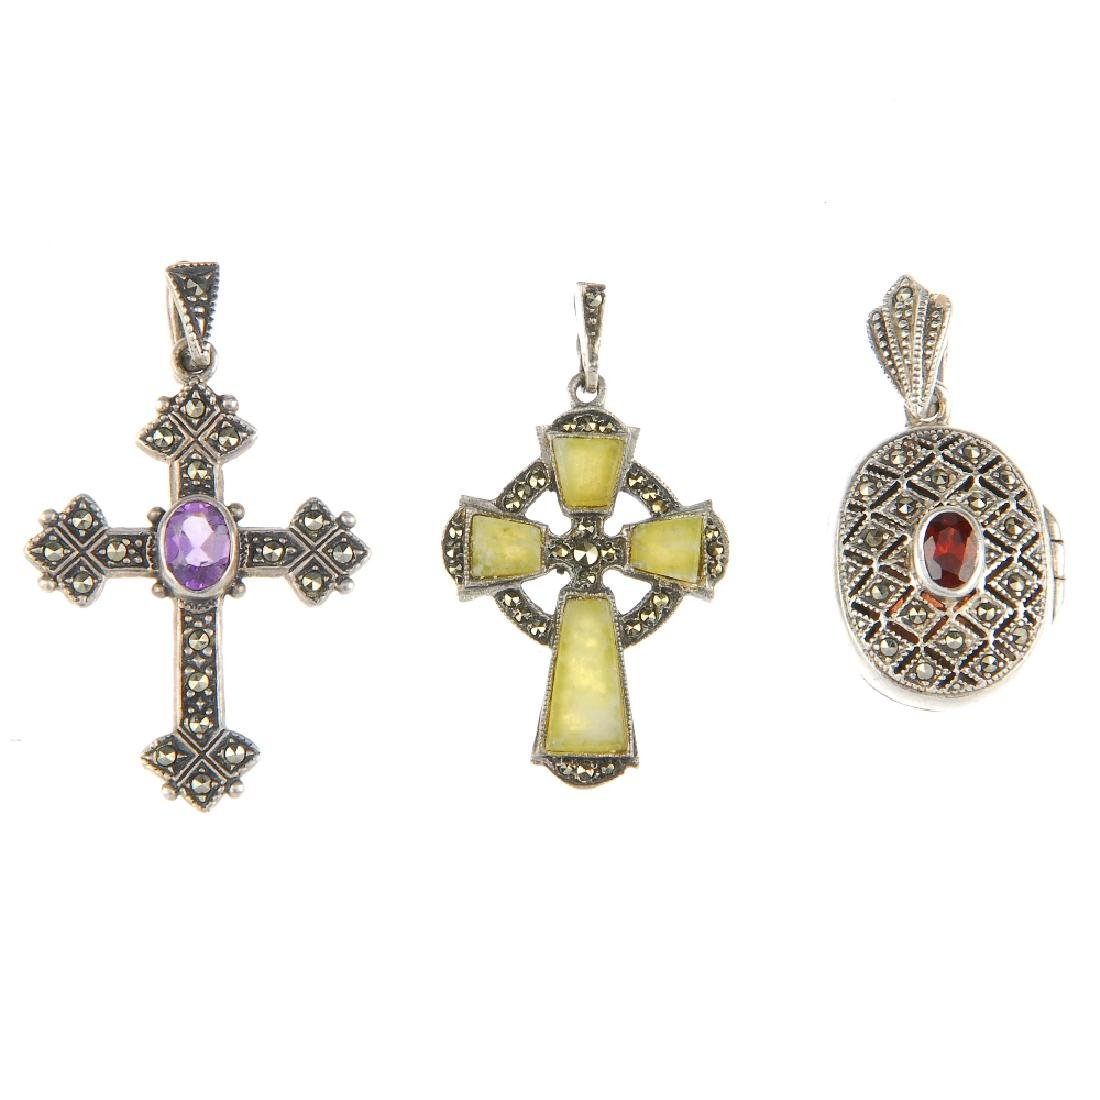 A selection of marcasite jewellery. To include